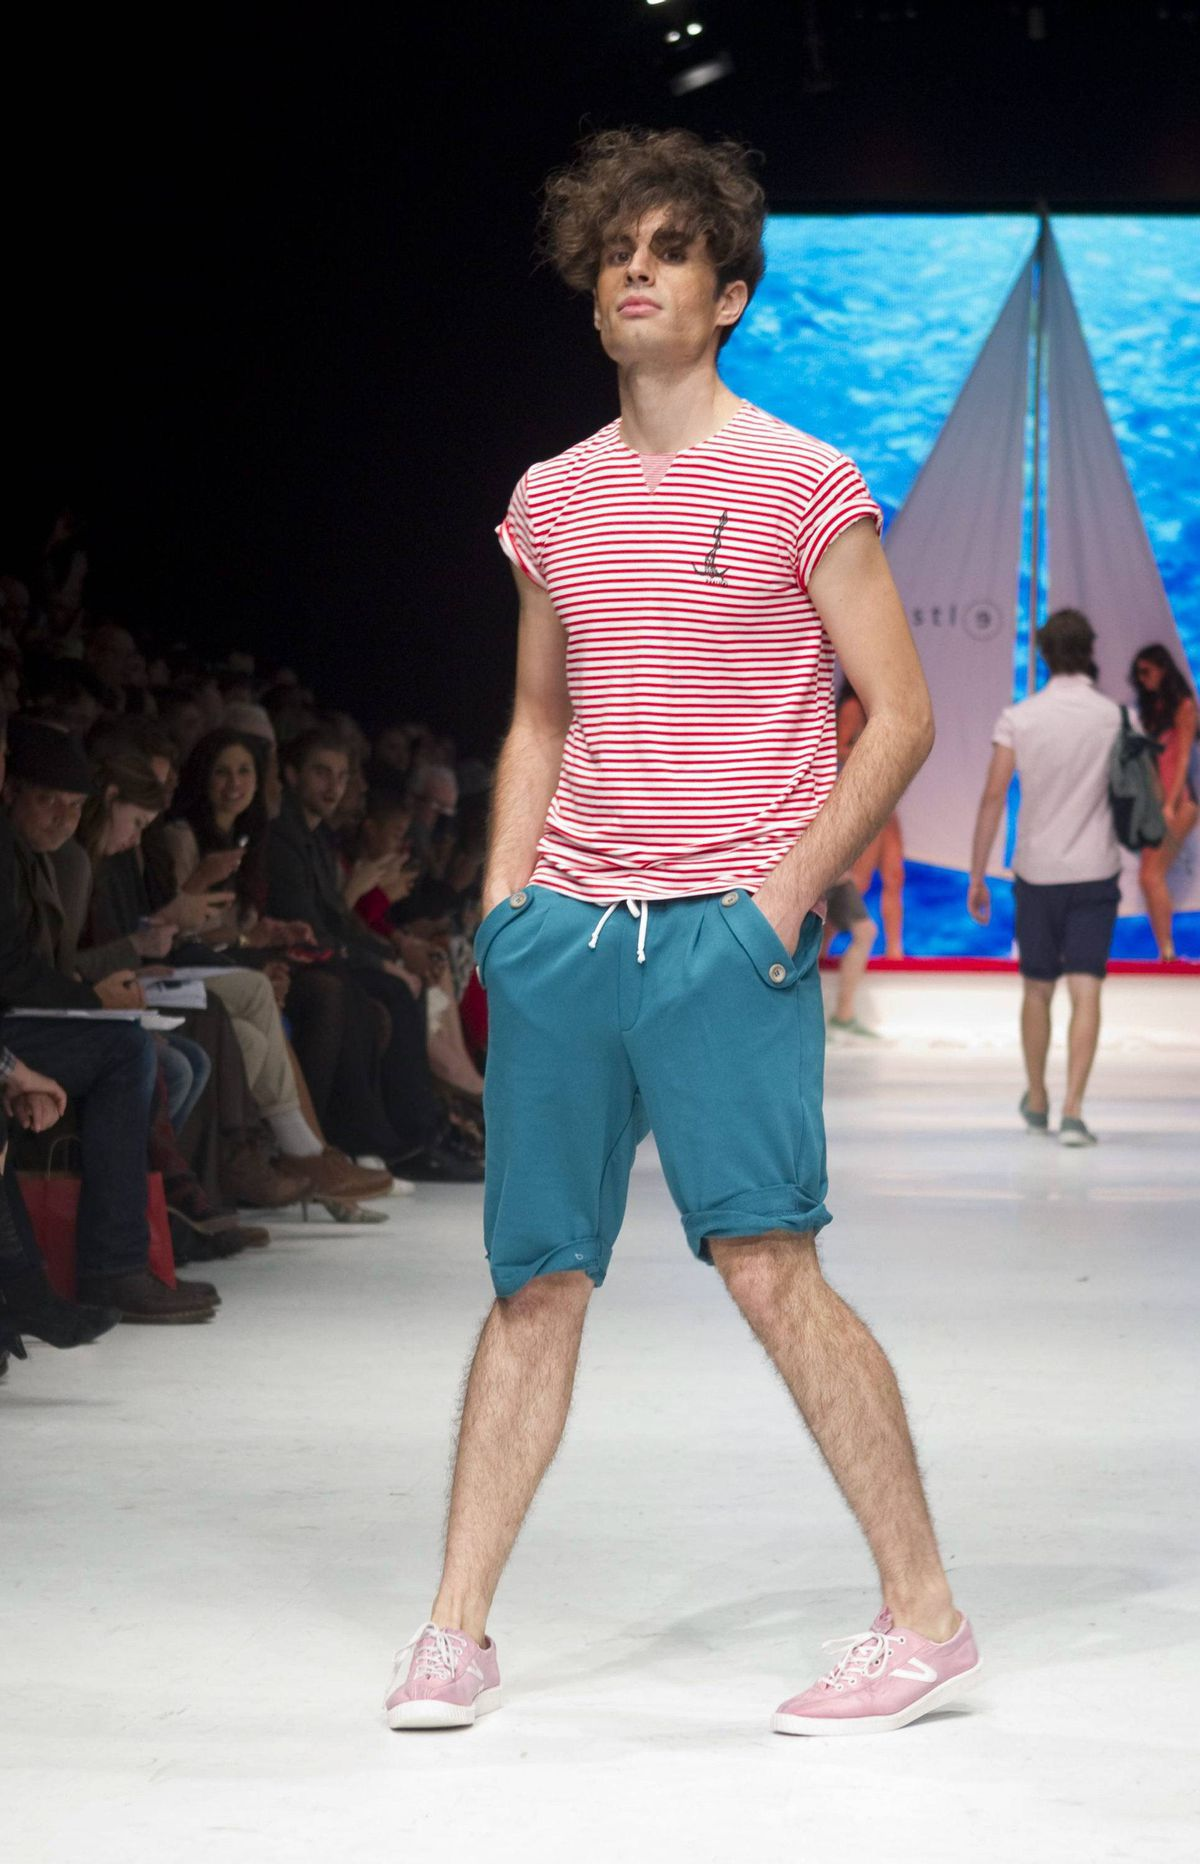 It's all about boating for Bustle in spring 2012 and designers Shawn Hewson and Ruth Promislow win a gold star for the most fun show of the week.